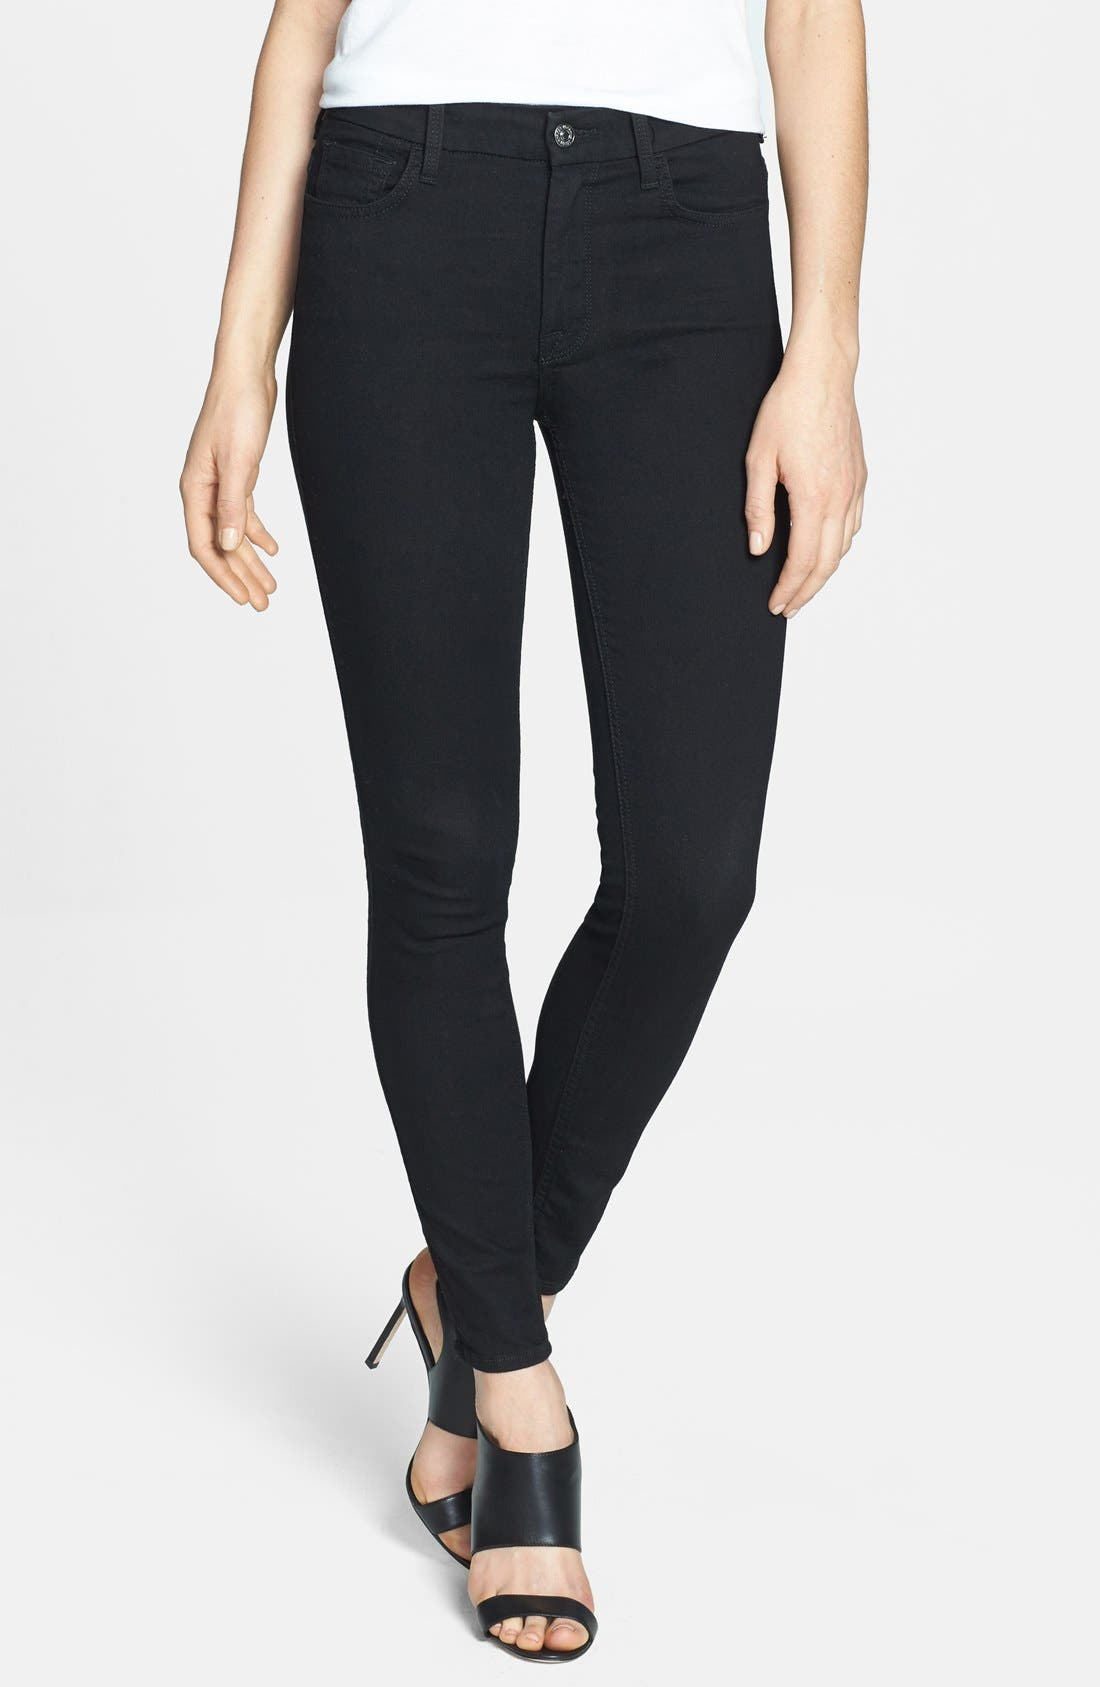 Alternate Image 1 Selected - 7 For All Mankind® High Rise Ankle Skinny Jeans (Elasticity Black)